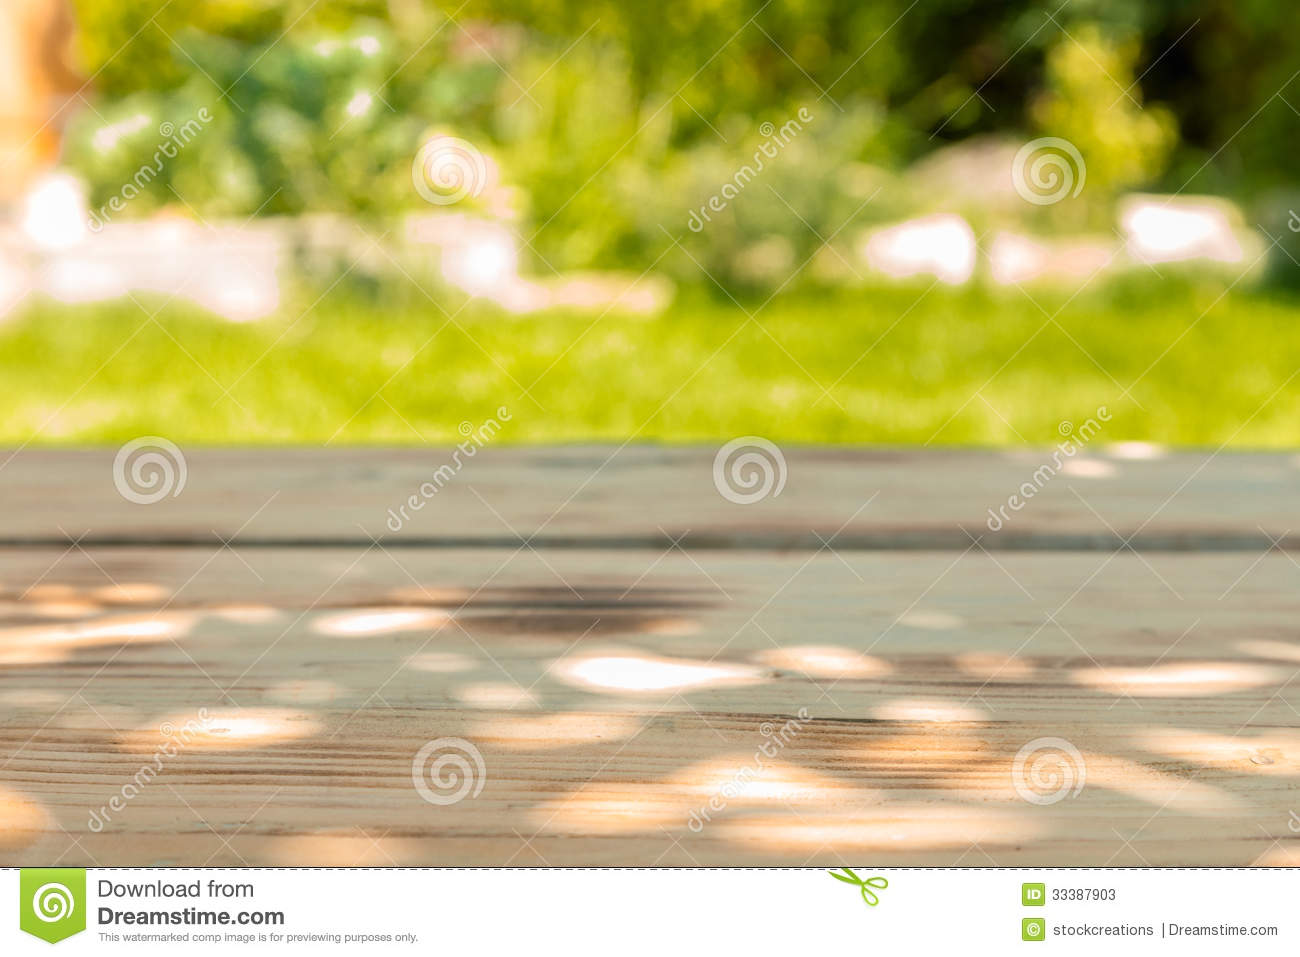 Wooden Table In A Garden In A Sunny Day Stock Image